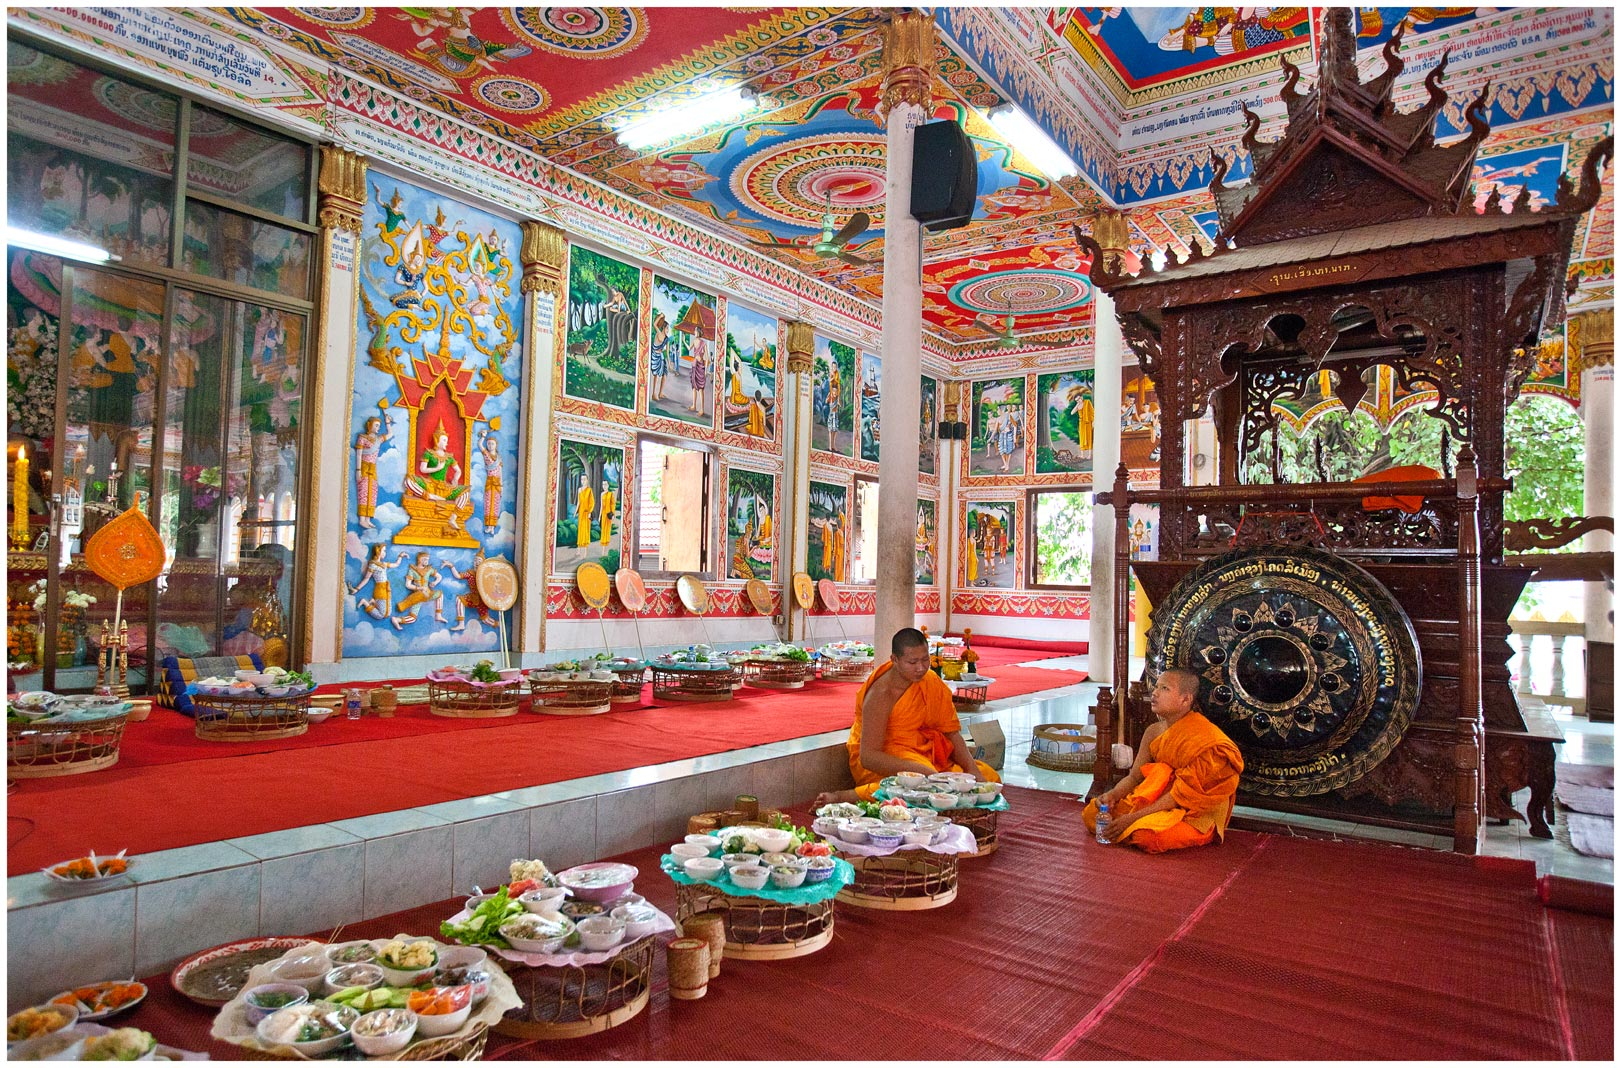 Inside-the-temple-w